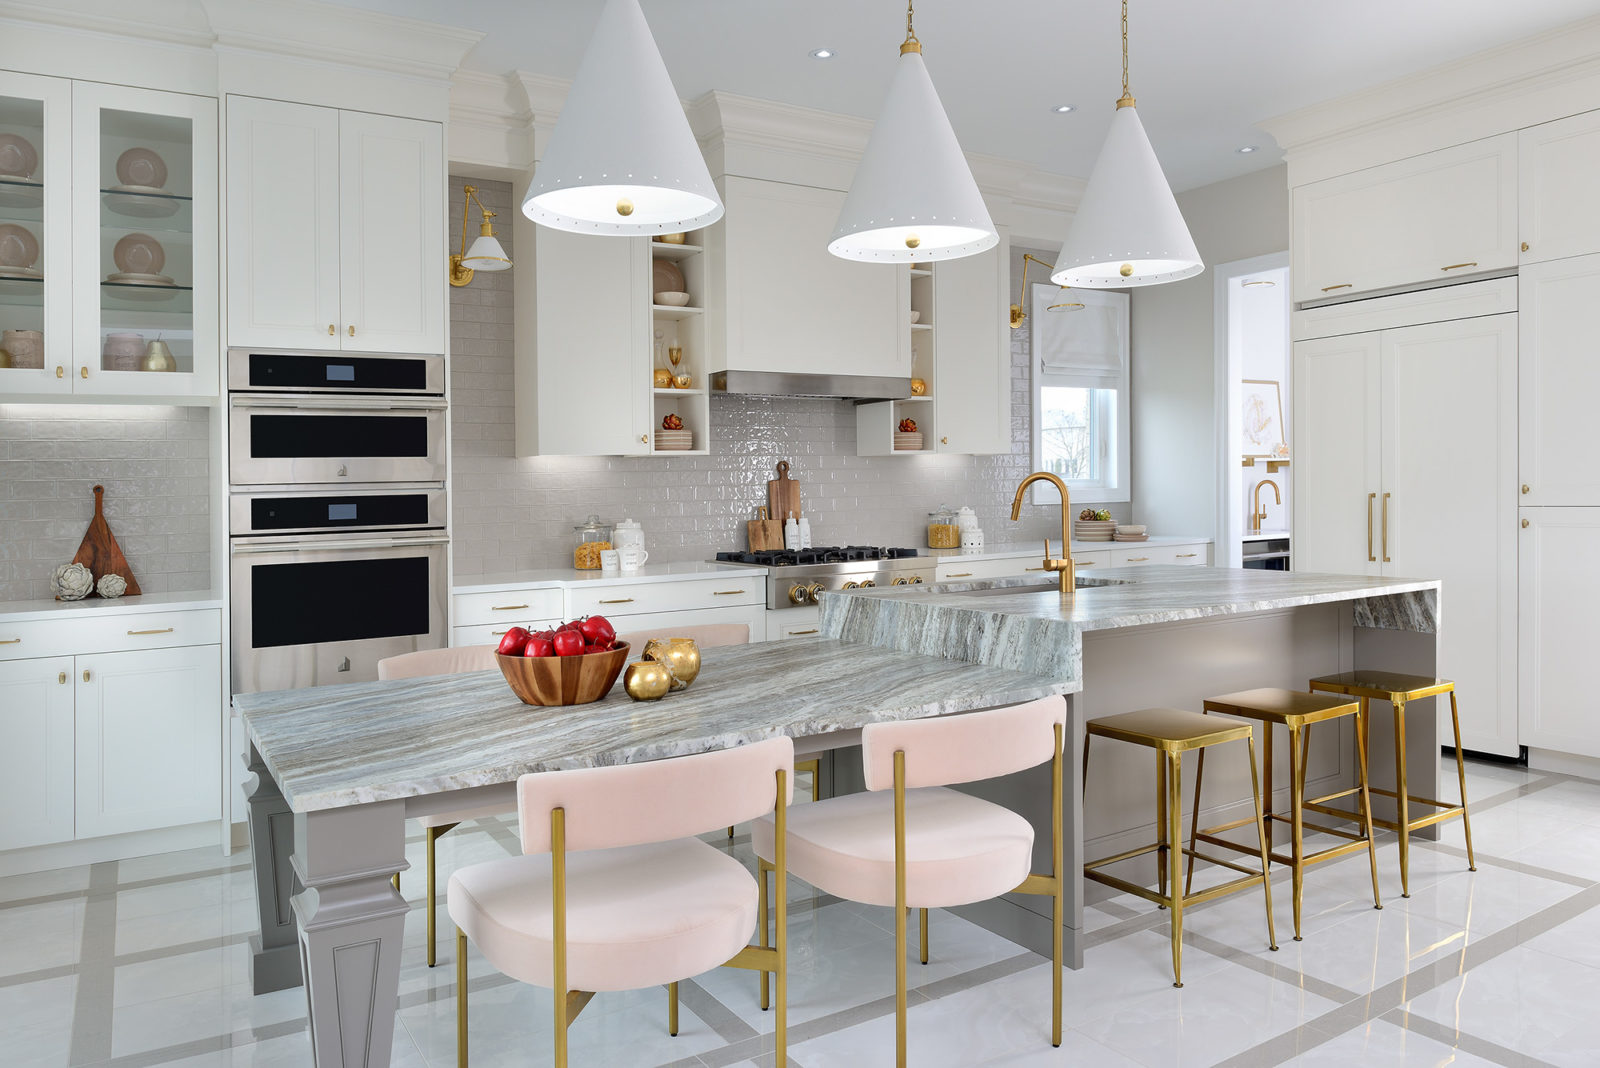 Gold lighting and fixtures in kitchen